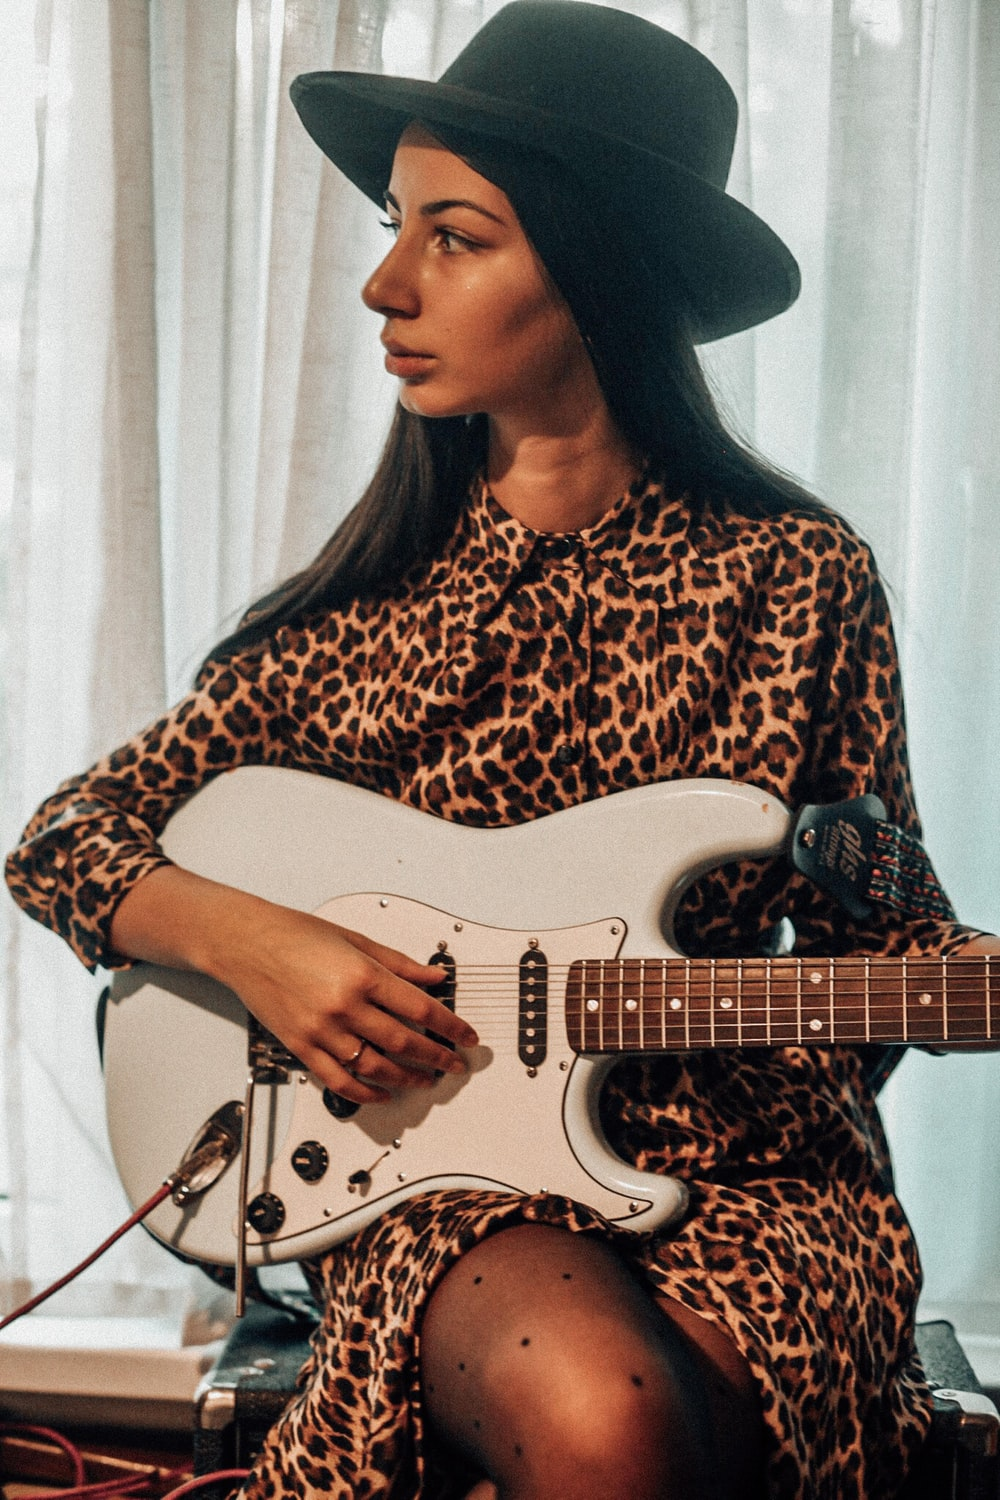 woman in black hat playing white electric guitar